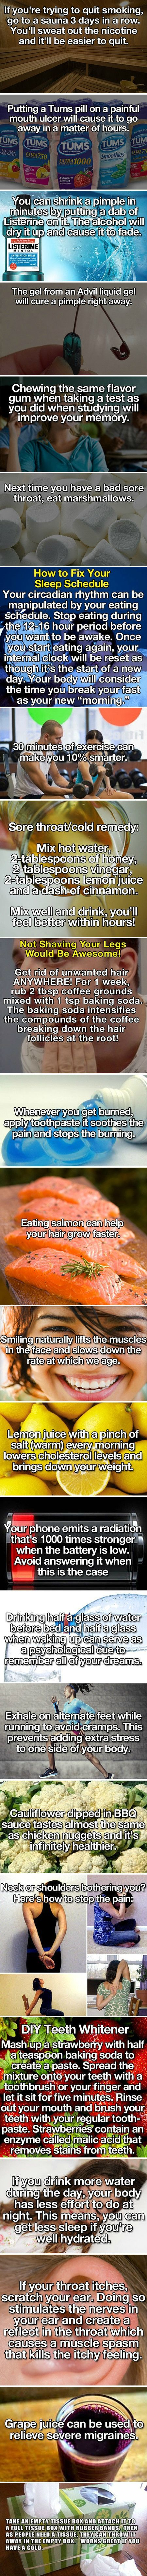 24 Life Hacks That Will Simplify Your Life [ Health]